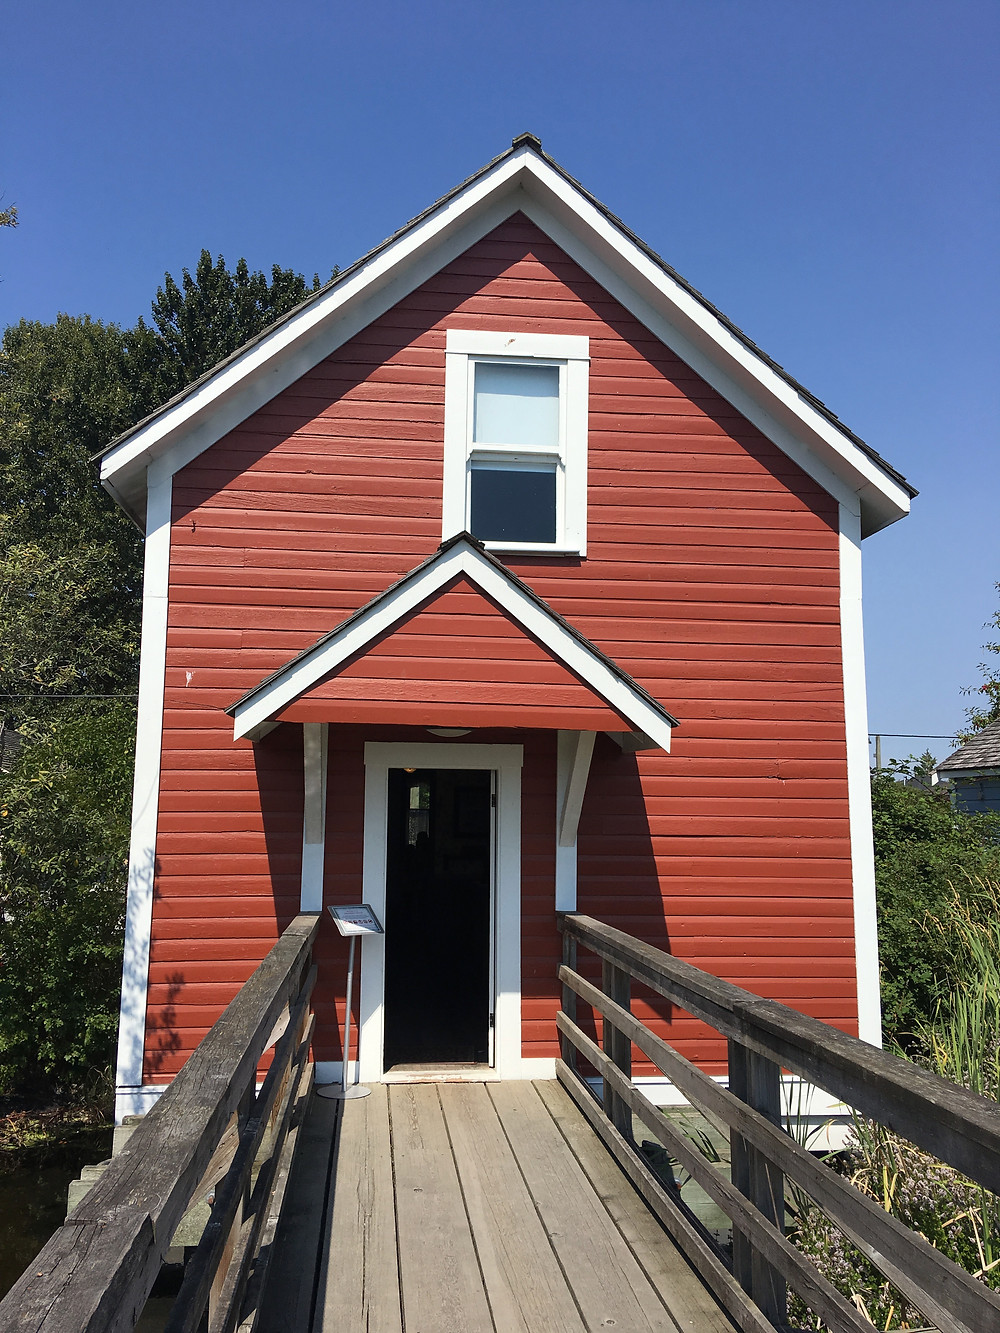 Murchison House where the Sisters of Atonement taught, on site at Britannia Shipyards National Historic Site, Photo by Lori Sherritt-Fleming